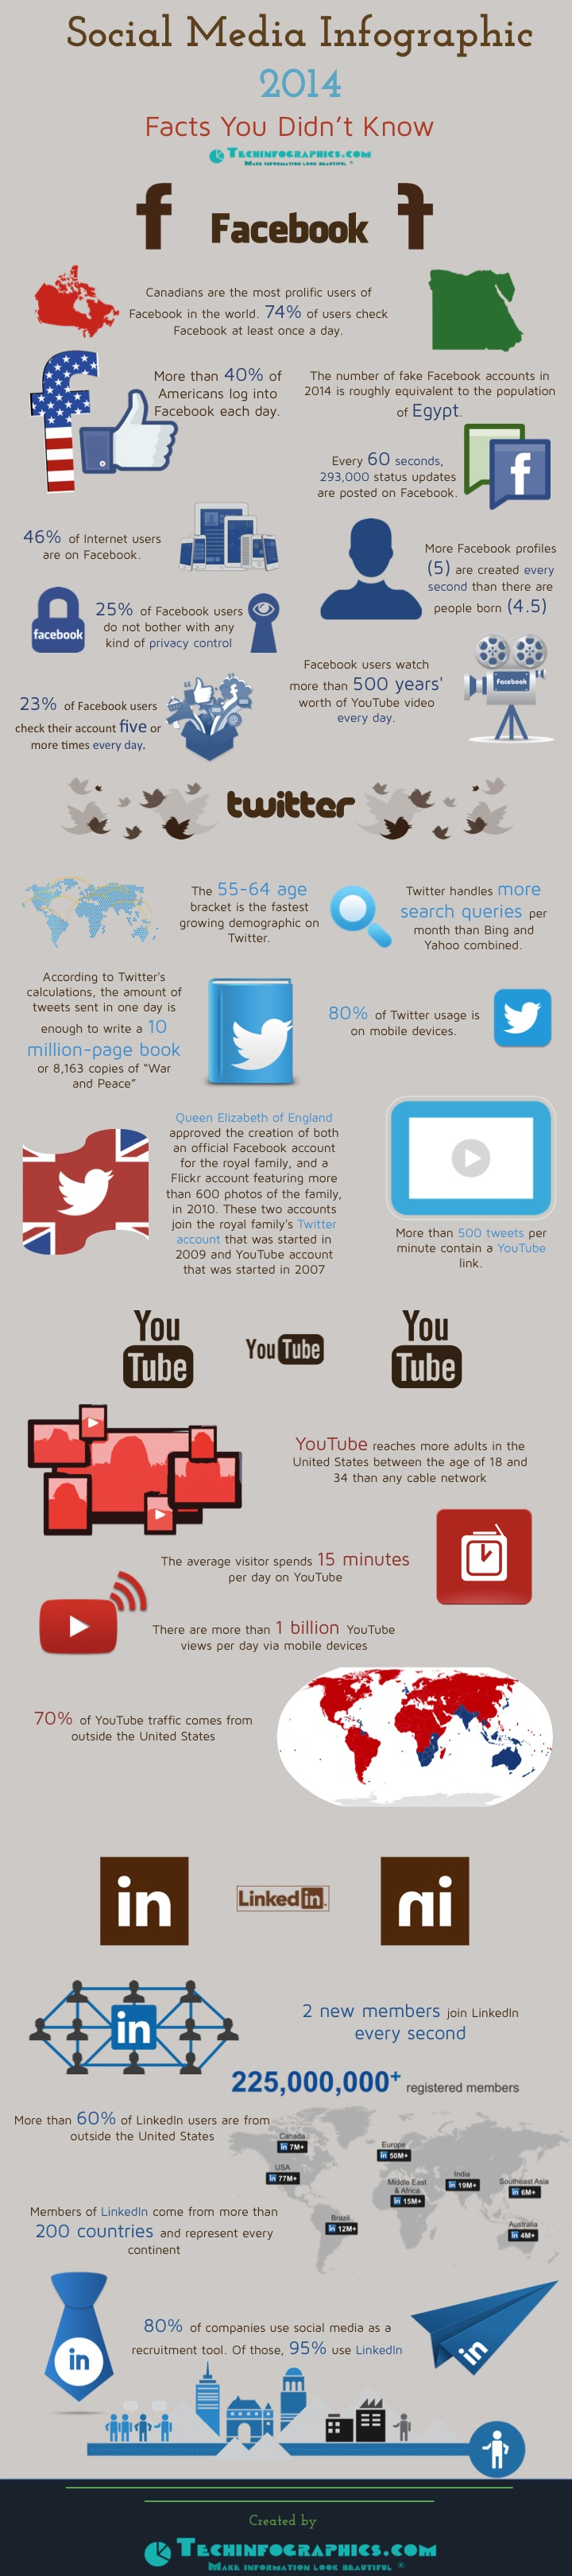 Social Media Infographic 2014 - Facts You Didn't Know